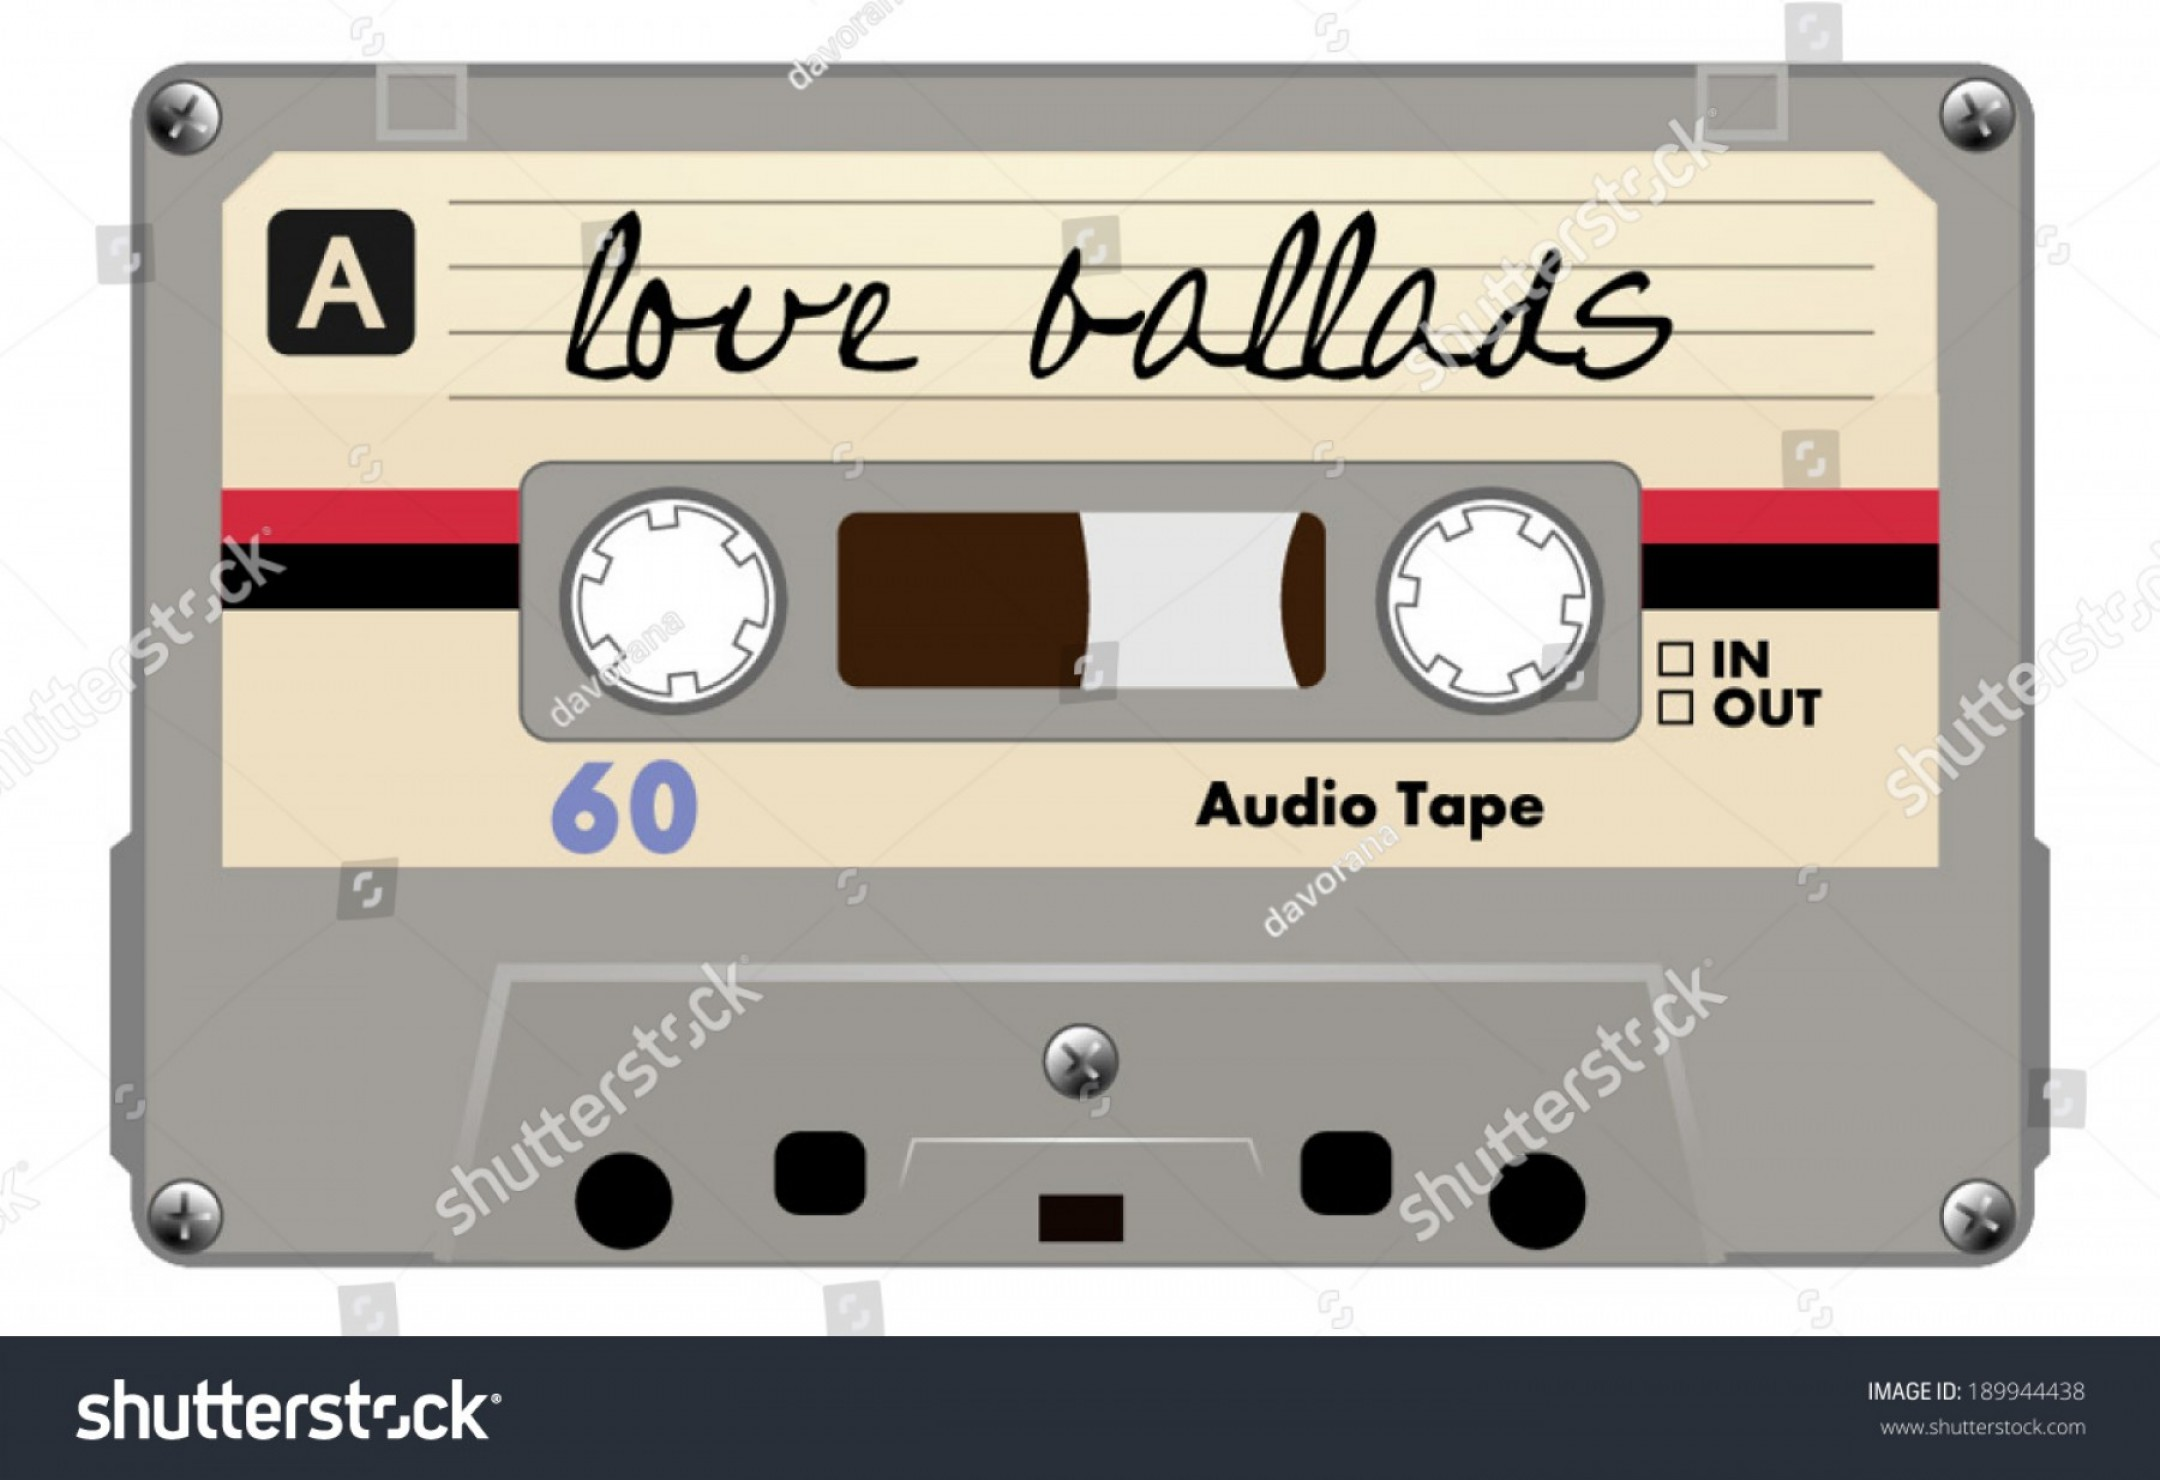 2160x1480 Cassette Tape Old Musical Audio Vector Shopatcloth